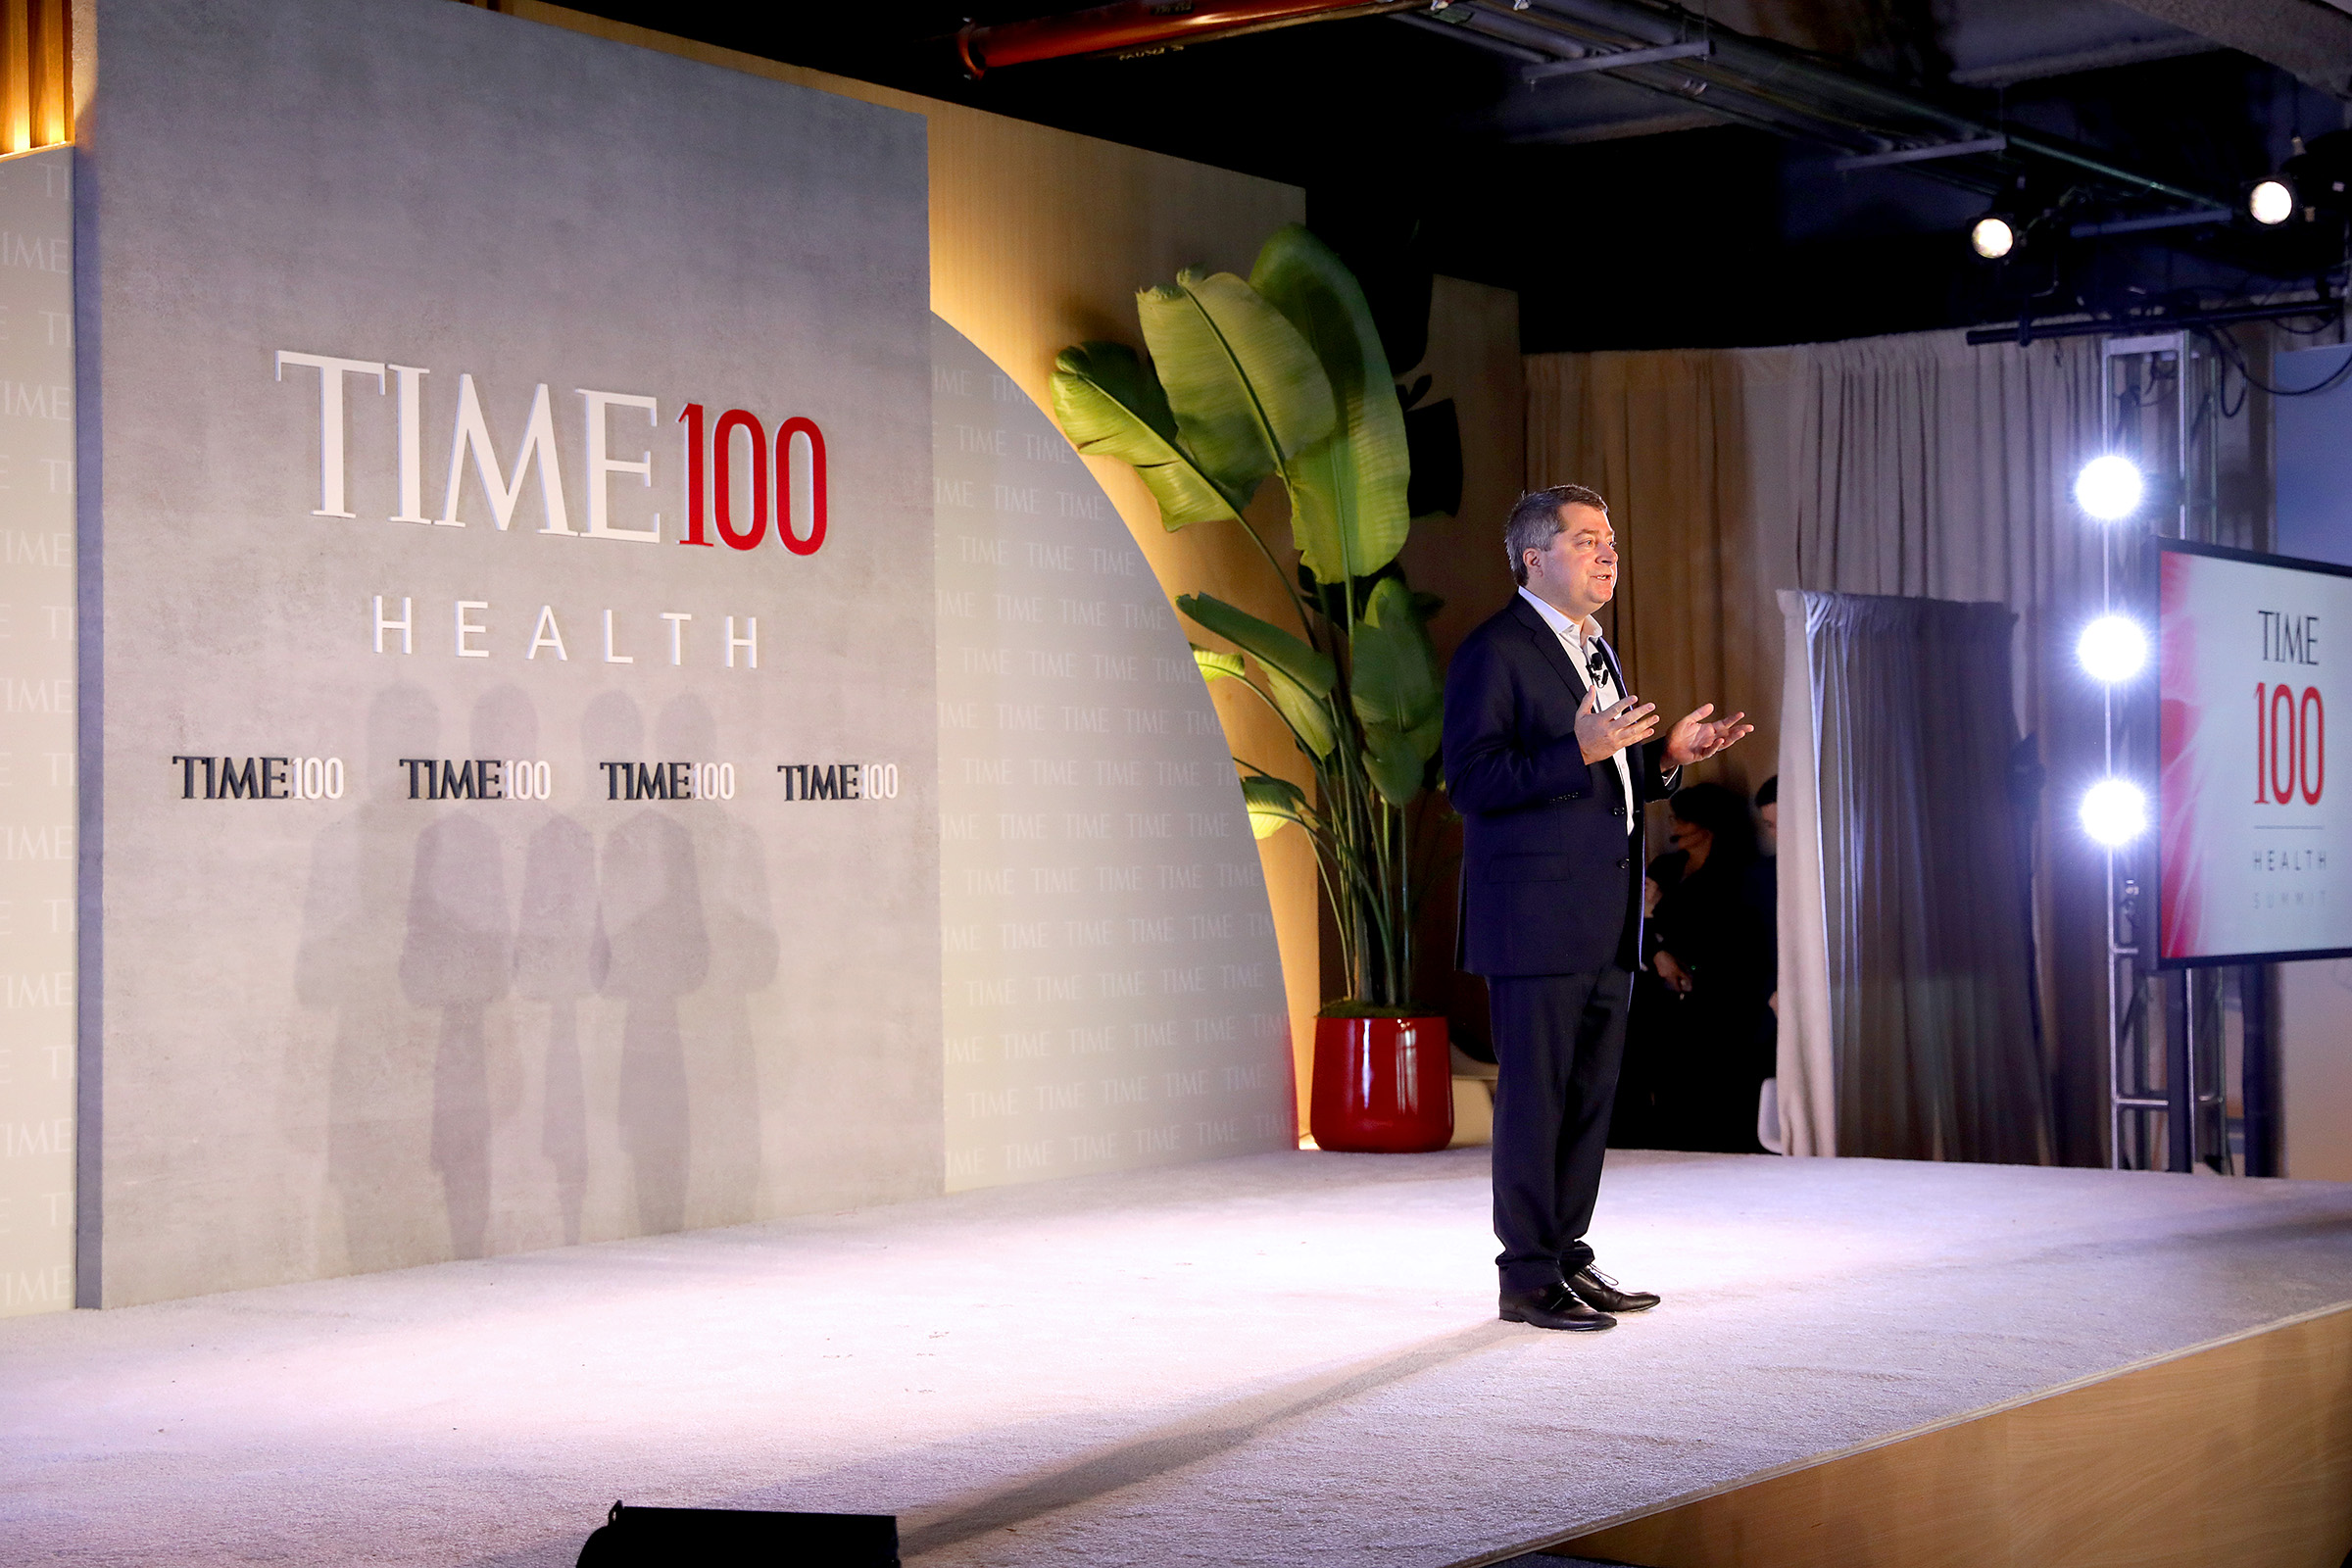 Editor-in-Chief & CEO at TIME, Edward Felsenthal, speaks onstage during the TIME 100 Health Summit at Pier 17 in New York City on Oct. 17, 2019.